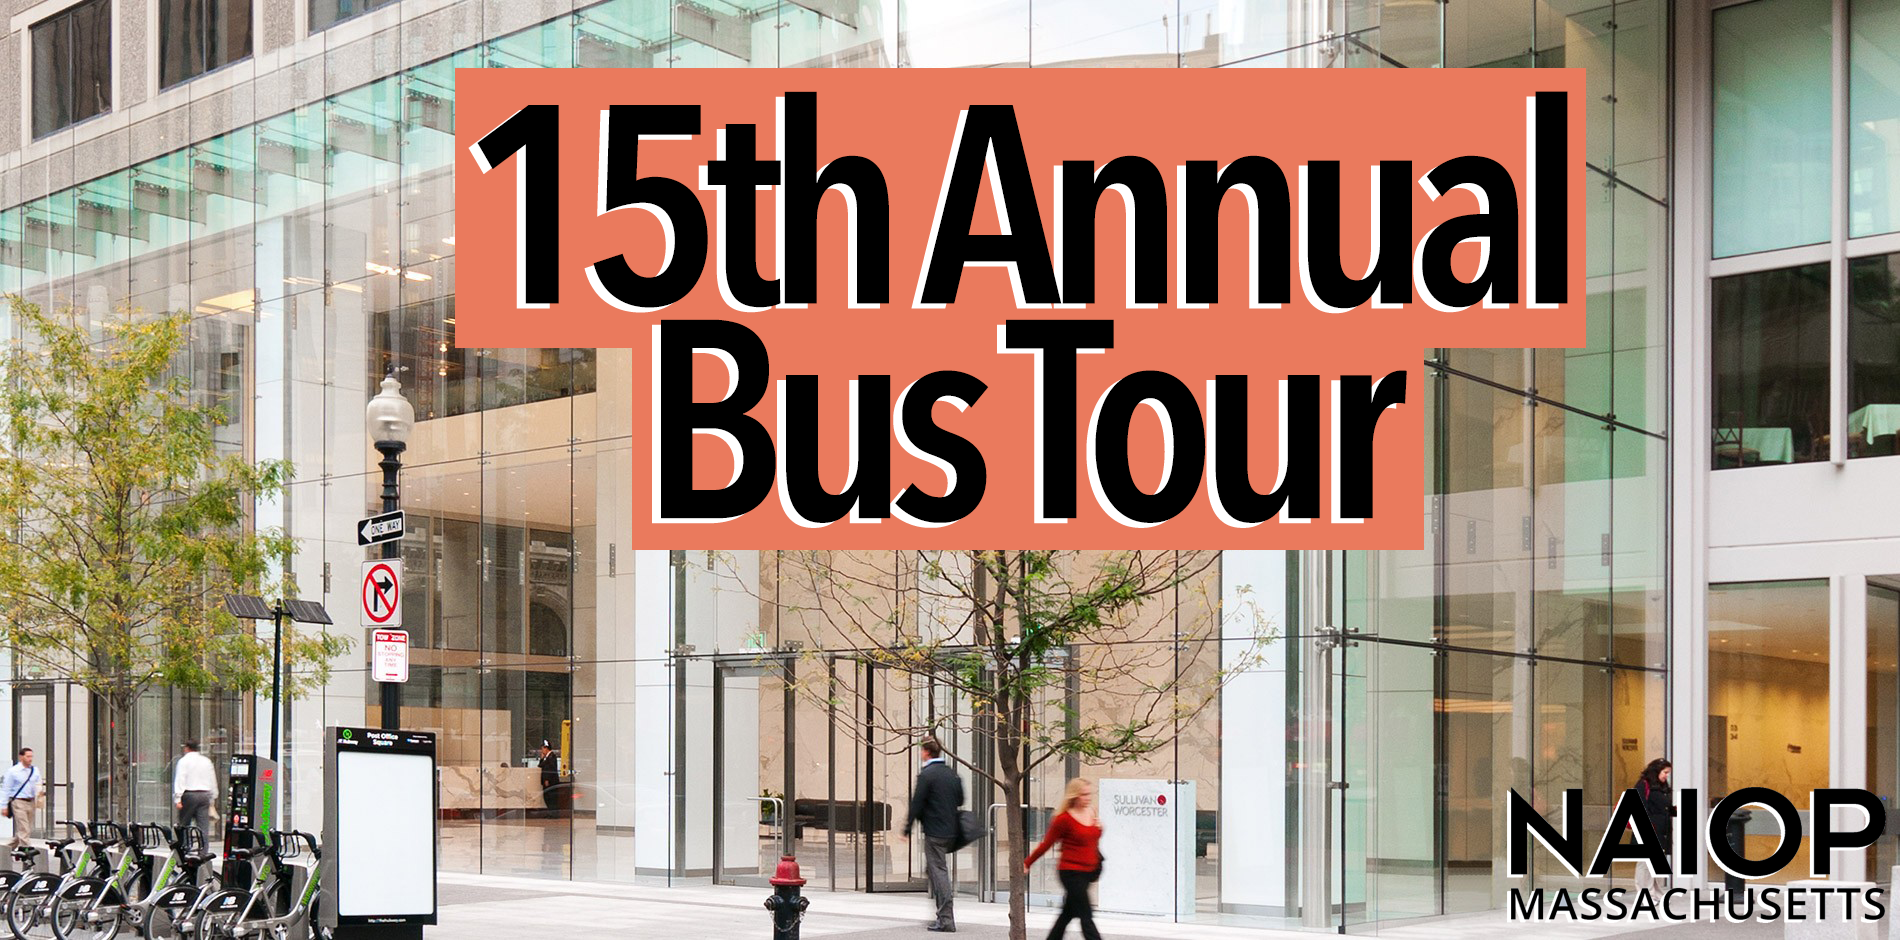 Naiop bus tour